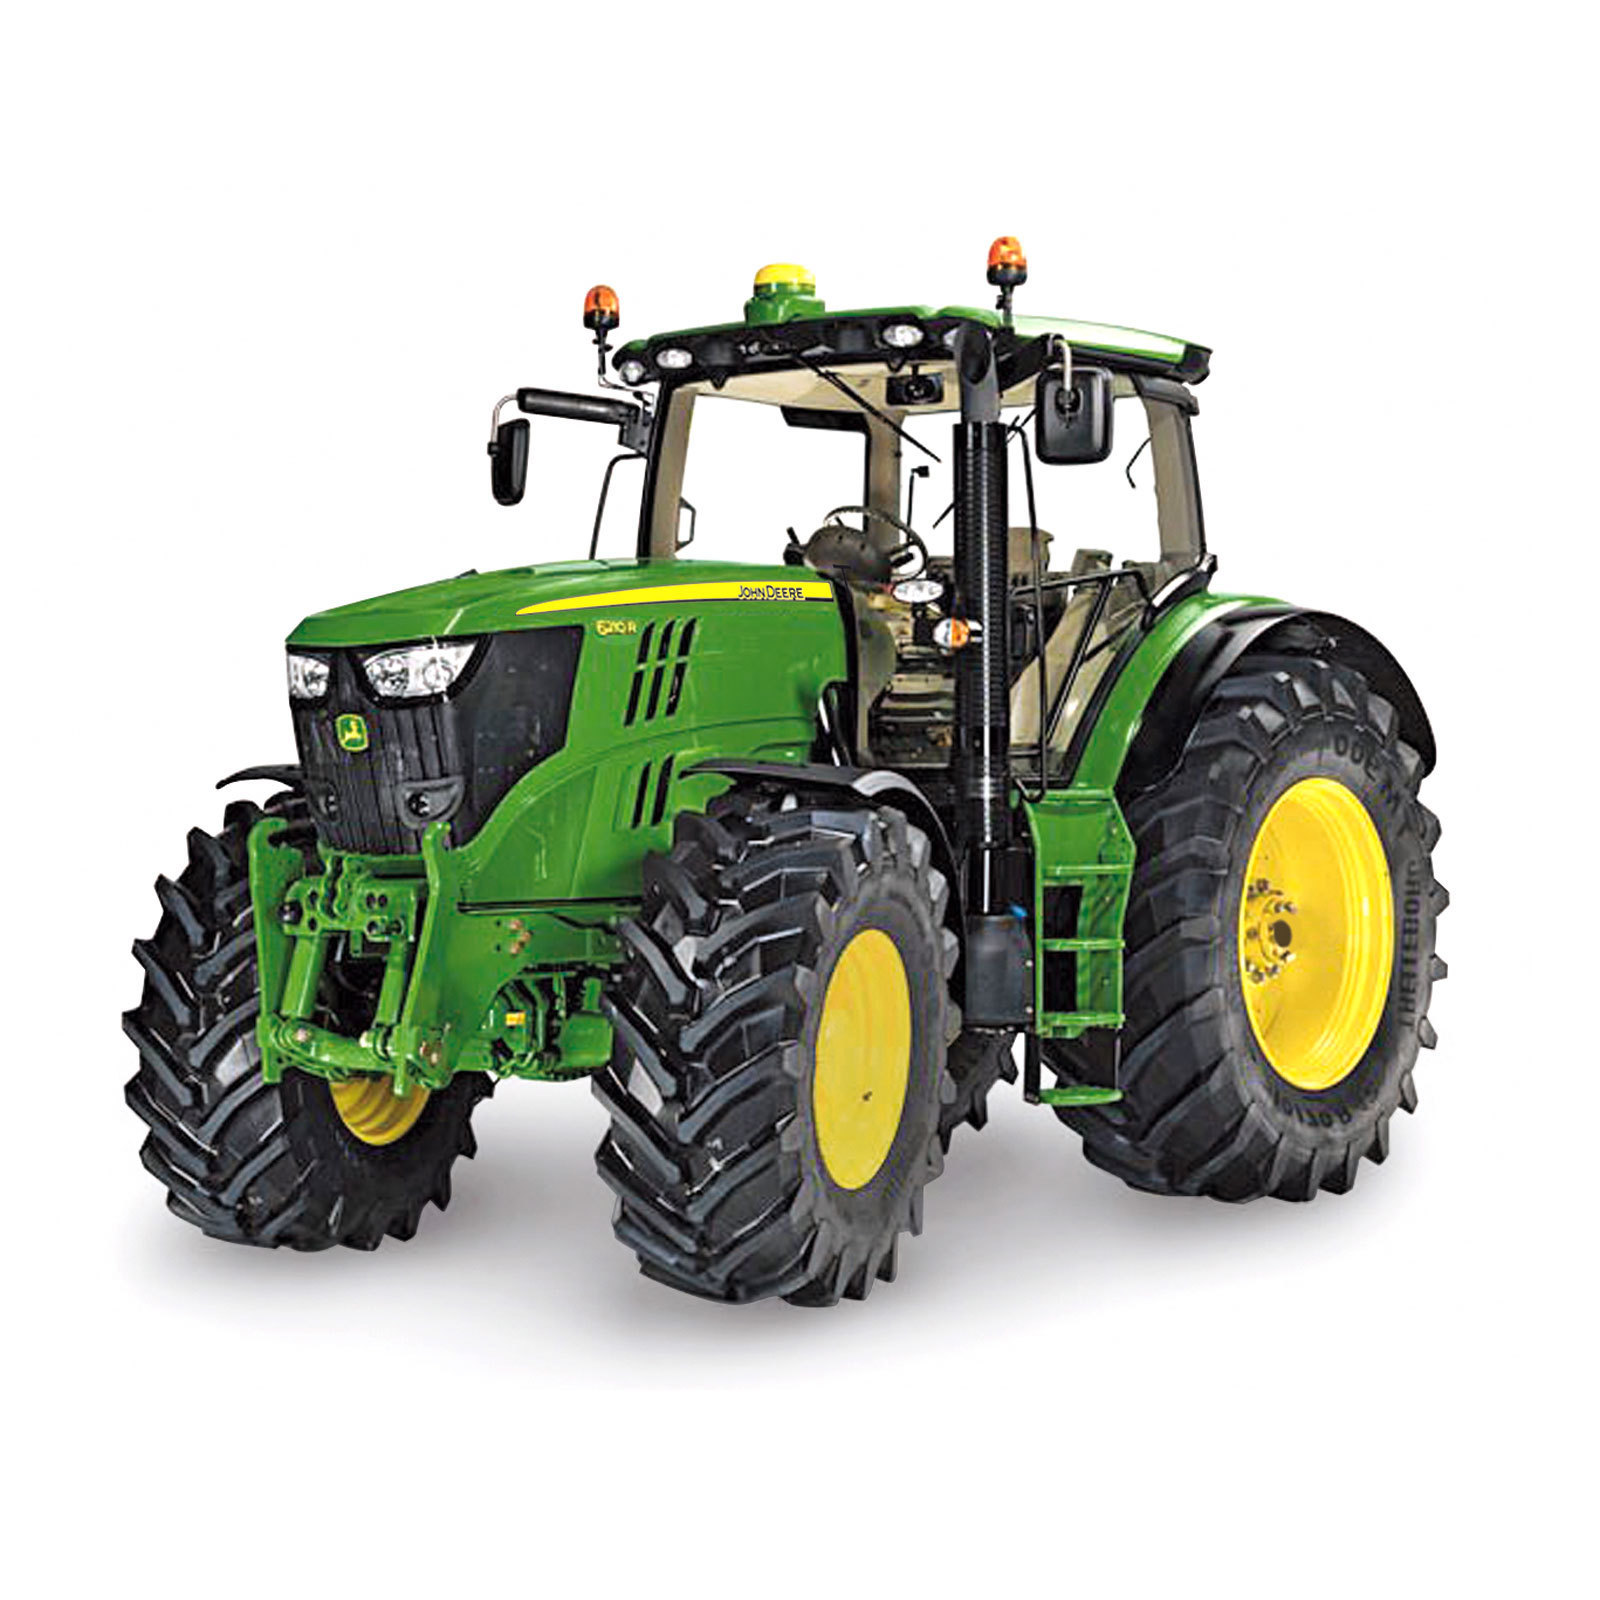 siku kinder spielzeug john deere typ 6210r farmer traktor. Black Bedroom Furniture Sets. Home Design Ideas